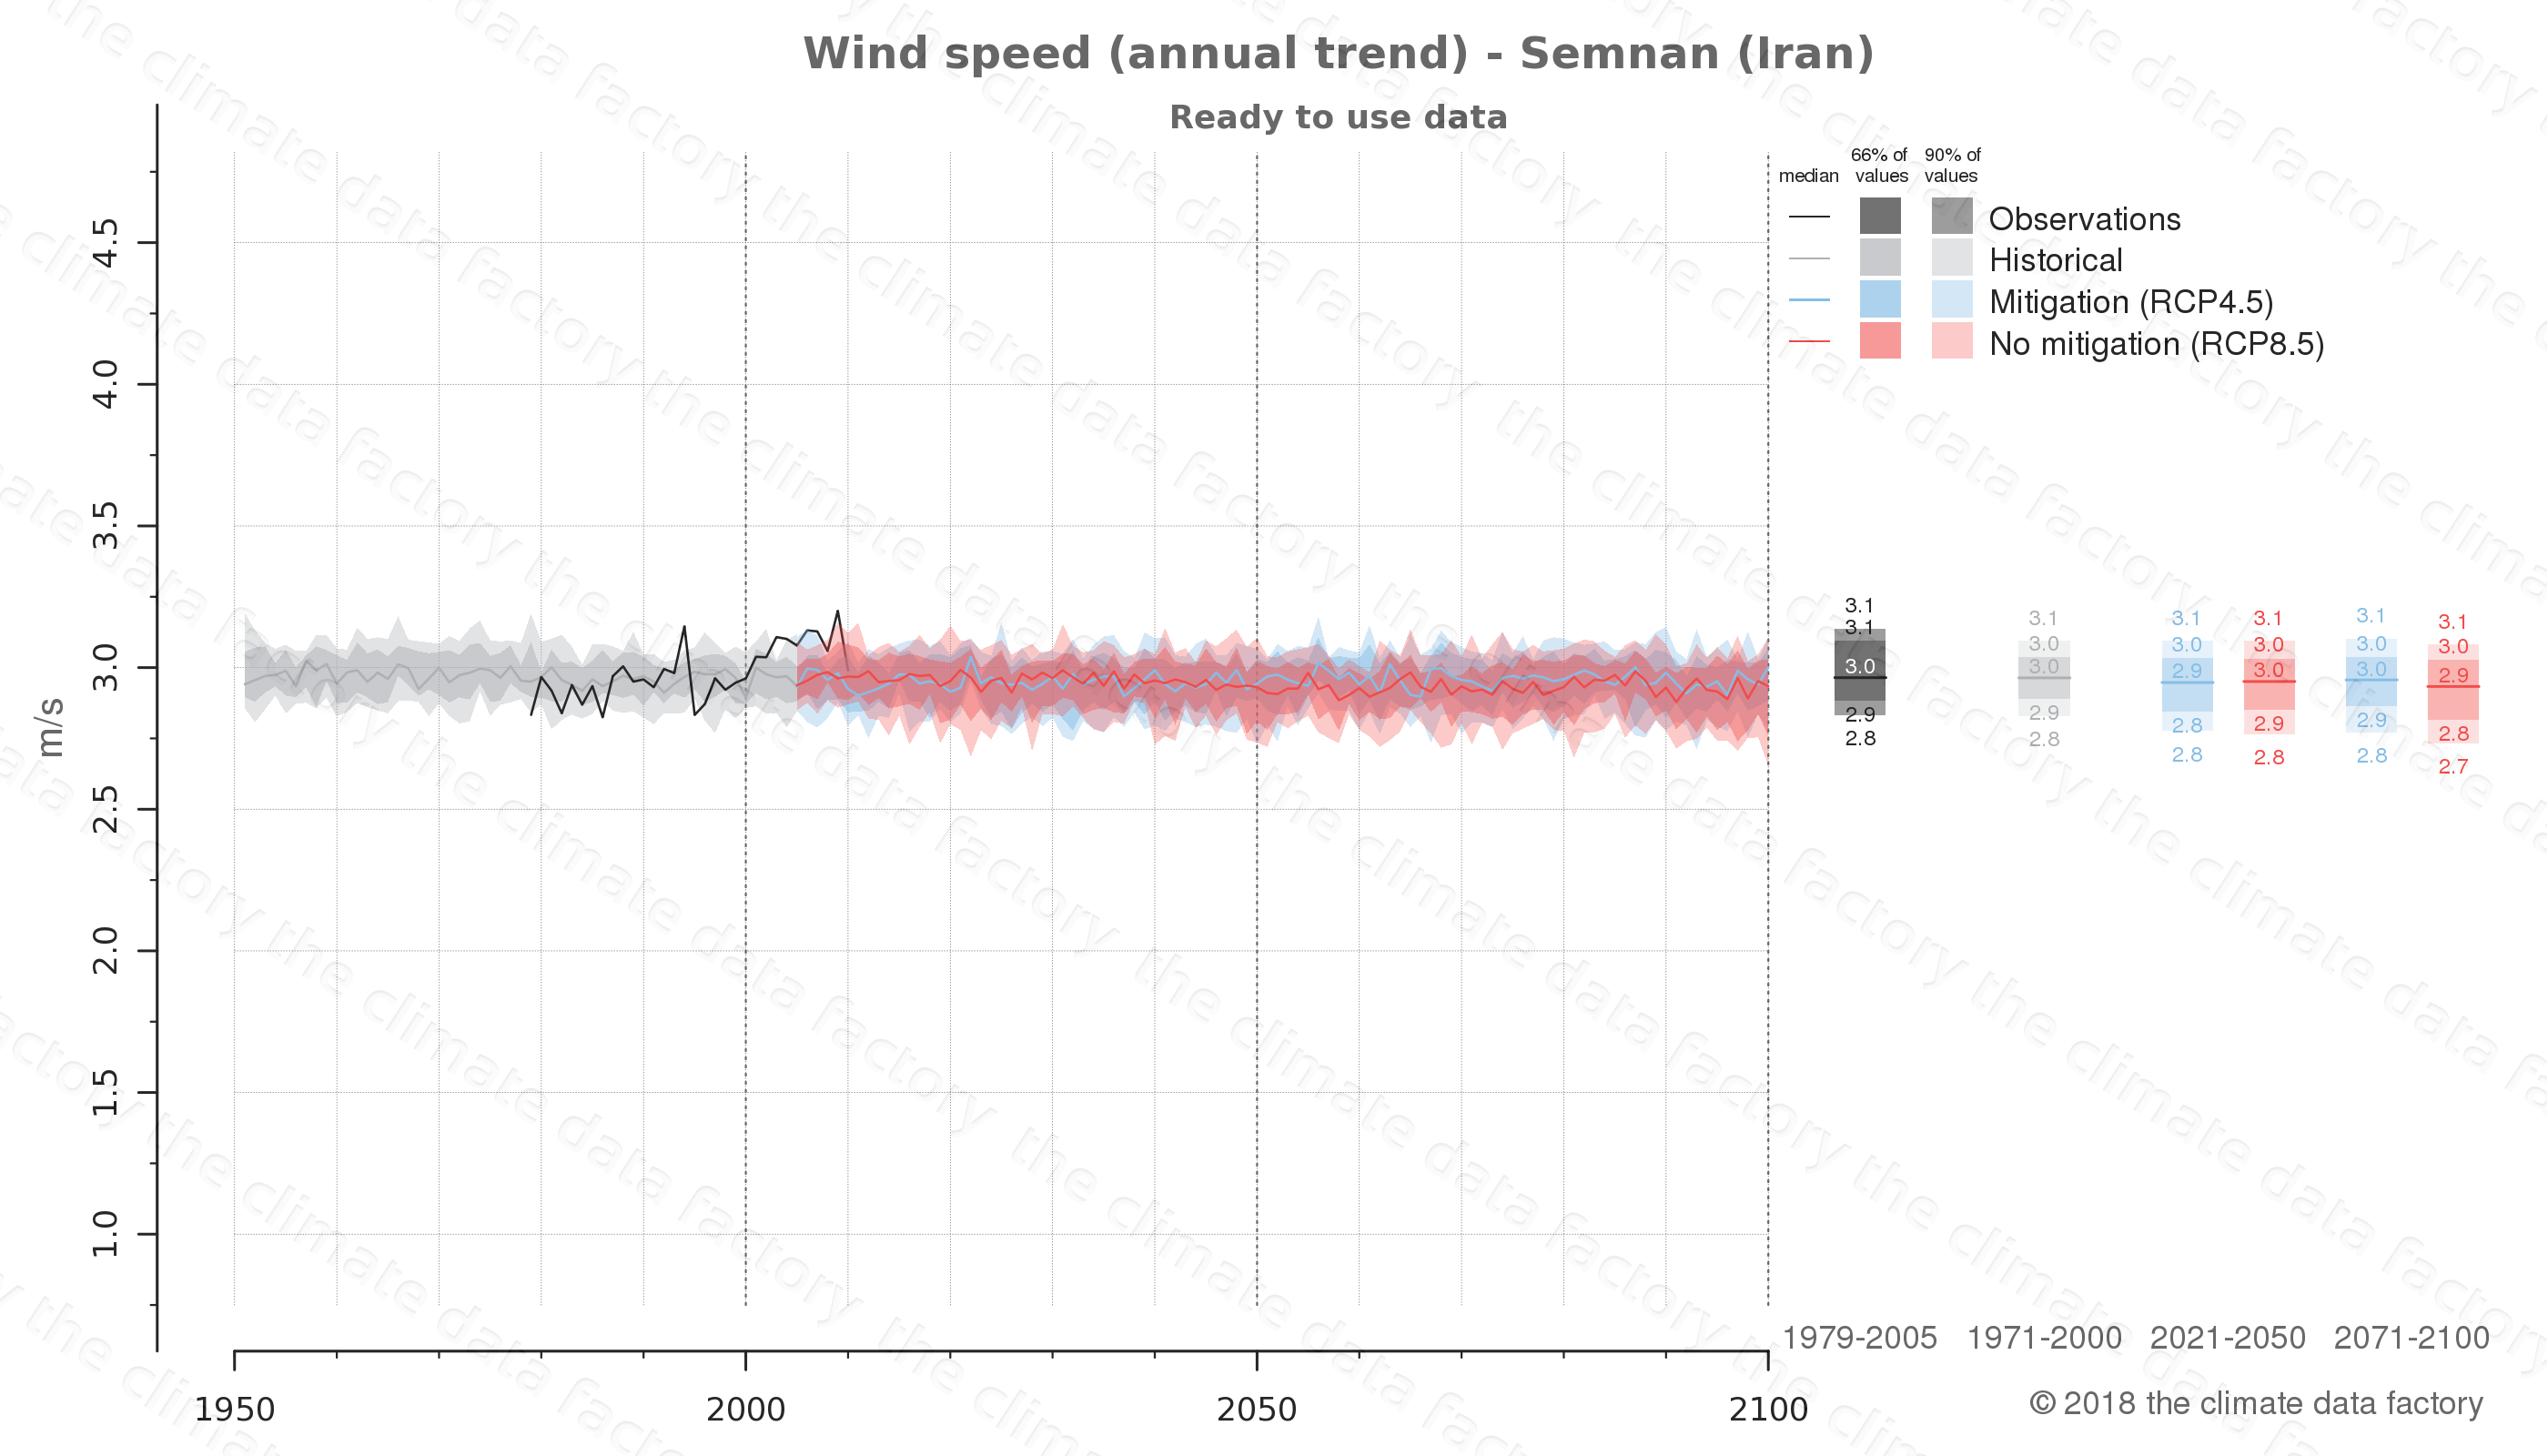 climate change data policy adaptation climate graph city data wind-speed semnan iran